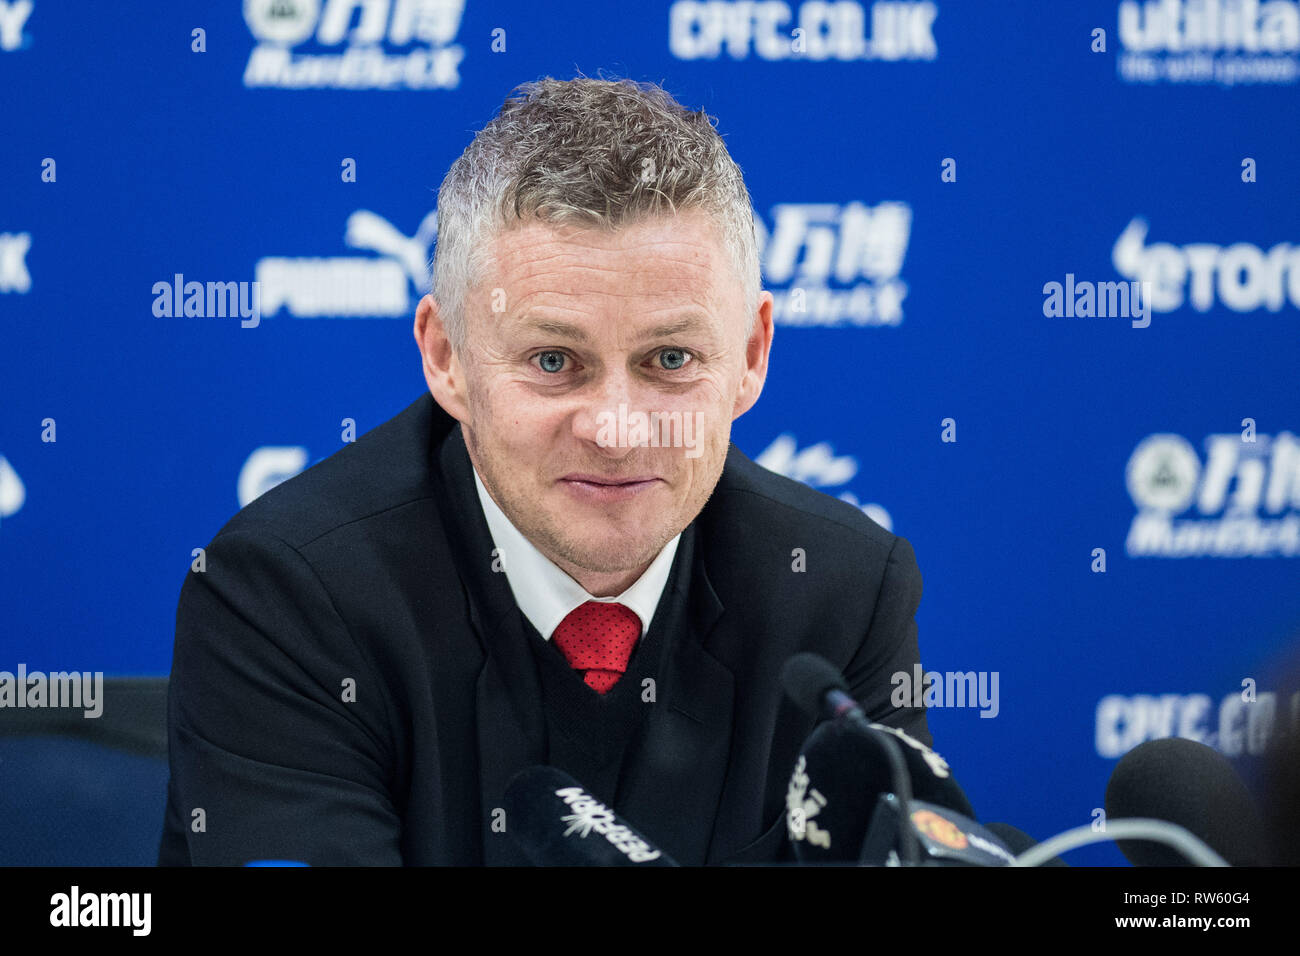 LONDON, ENGLAND - FEBRUARY 27: manager Ole Gunnar Solskjaer of Manchester United at press conference after the Premier League match between Crystal Pa - Stock Image